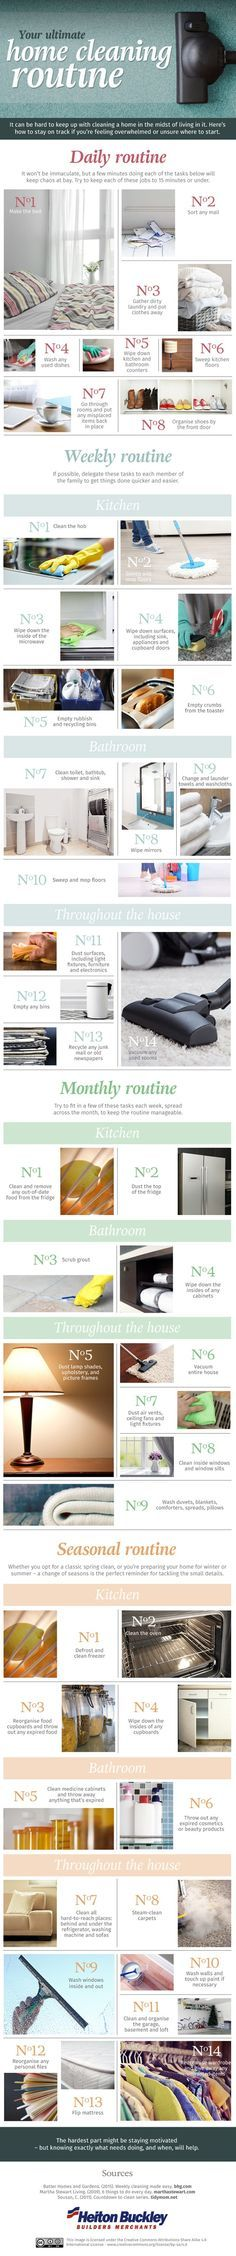 Your Ultimate Home Cleaning Routine